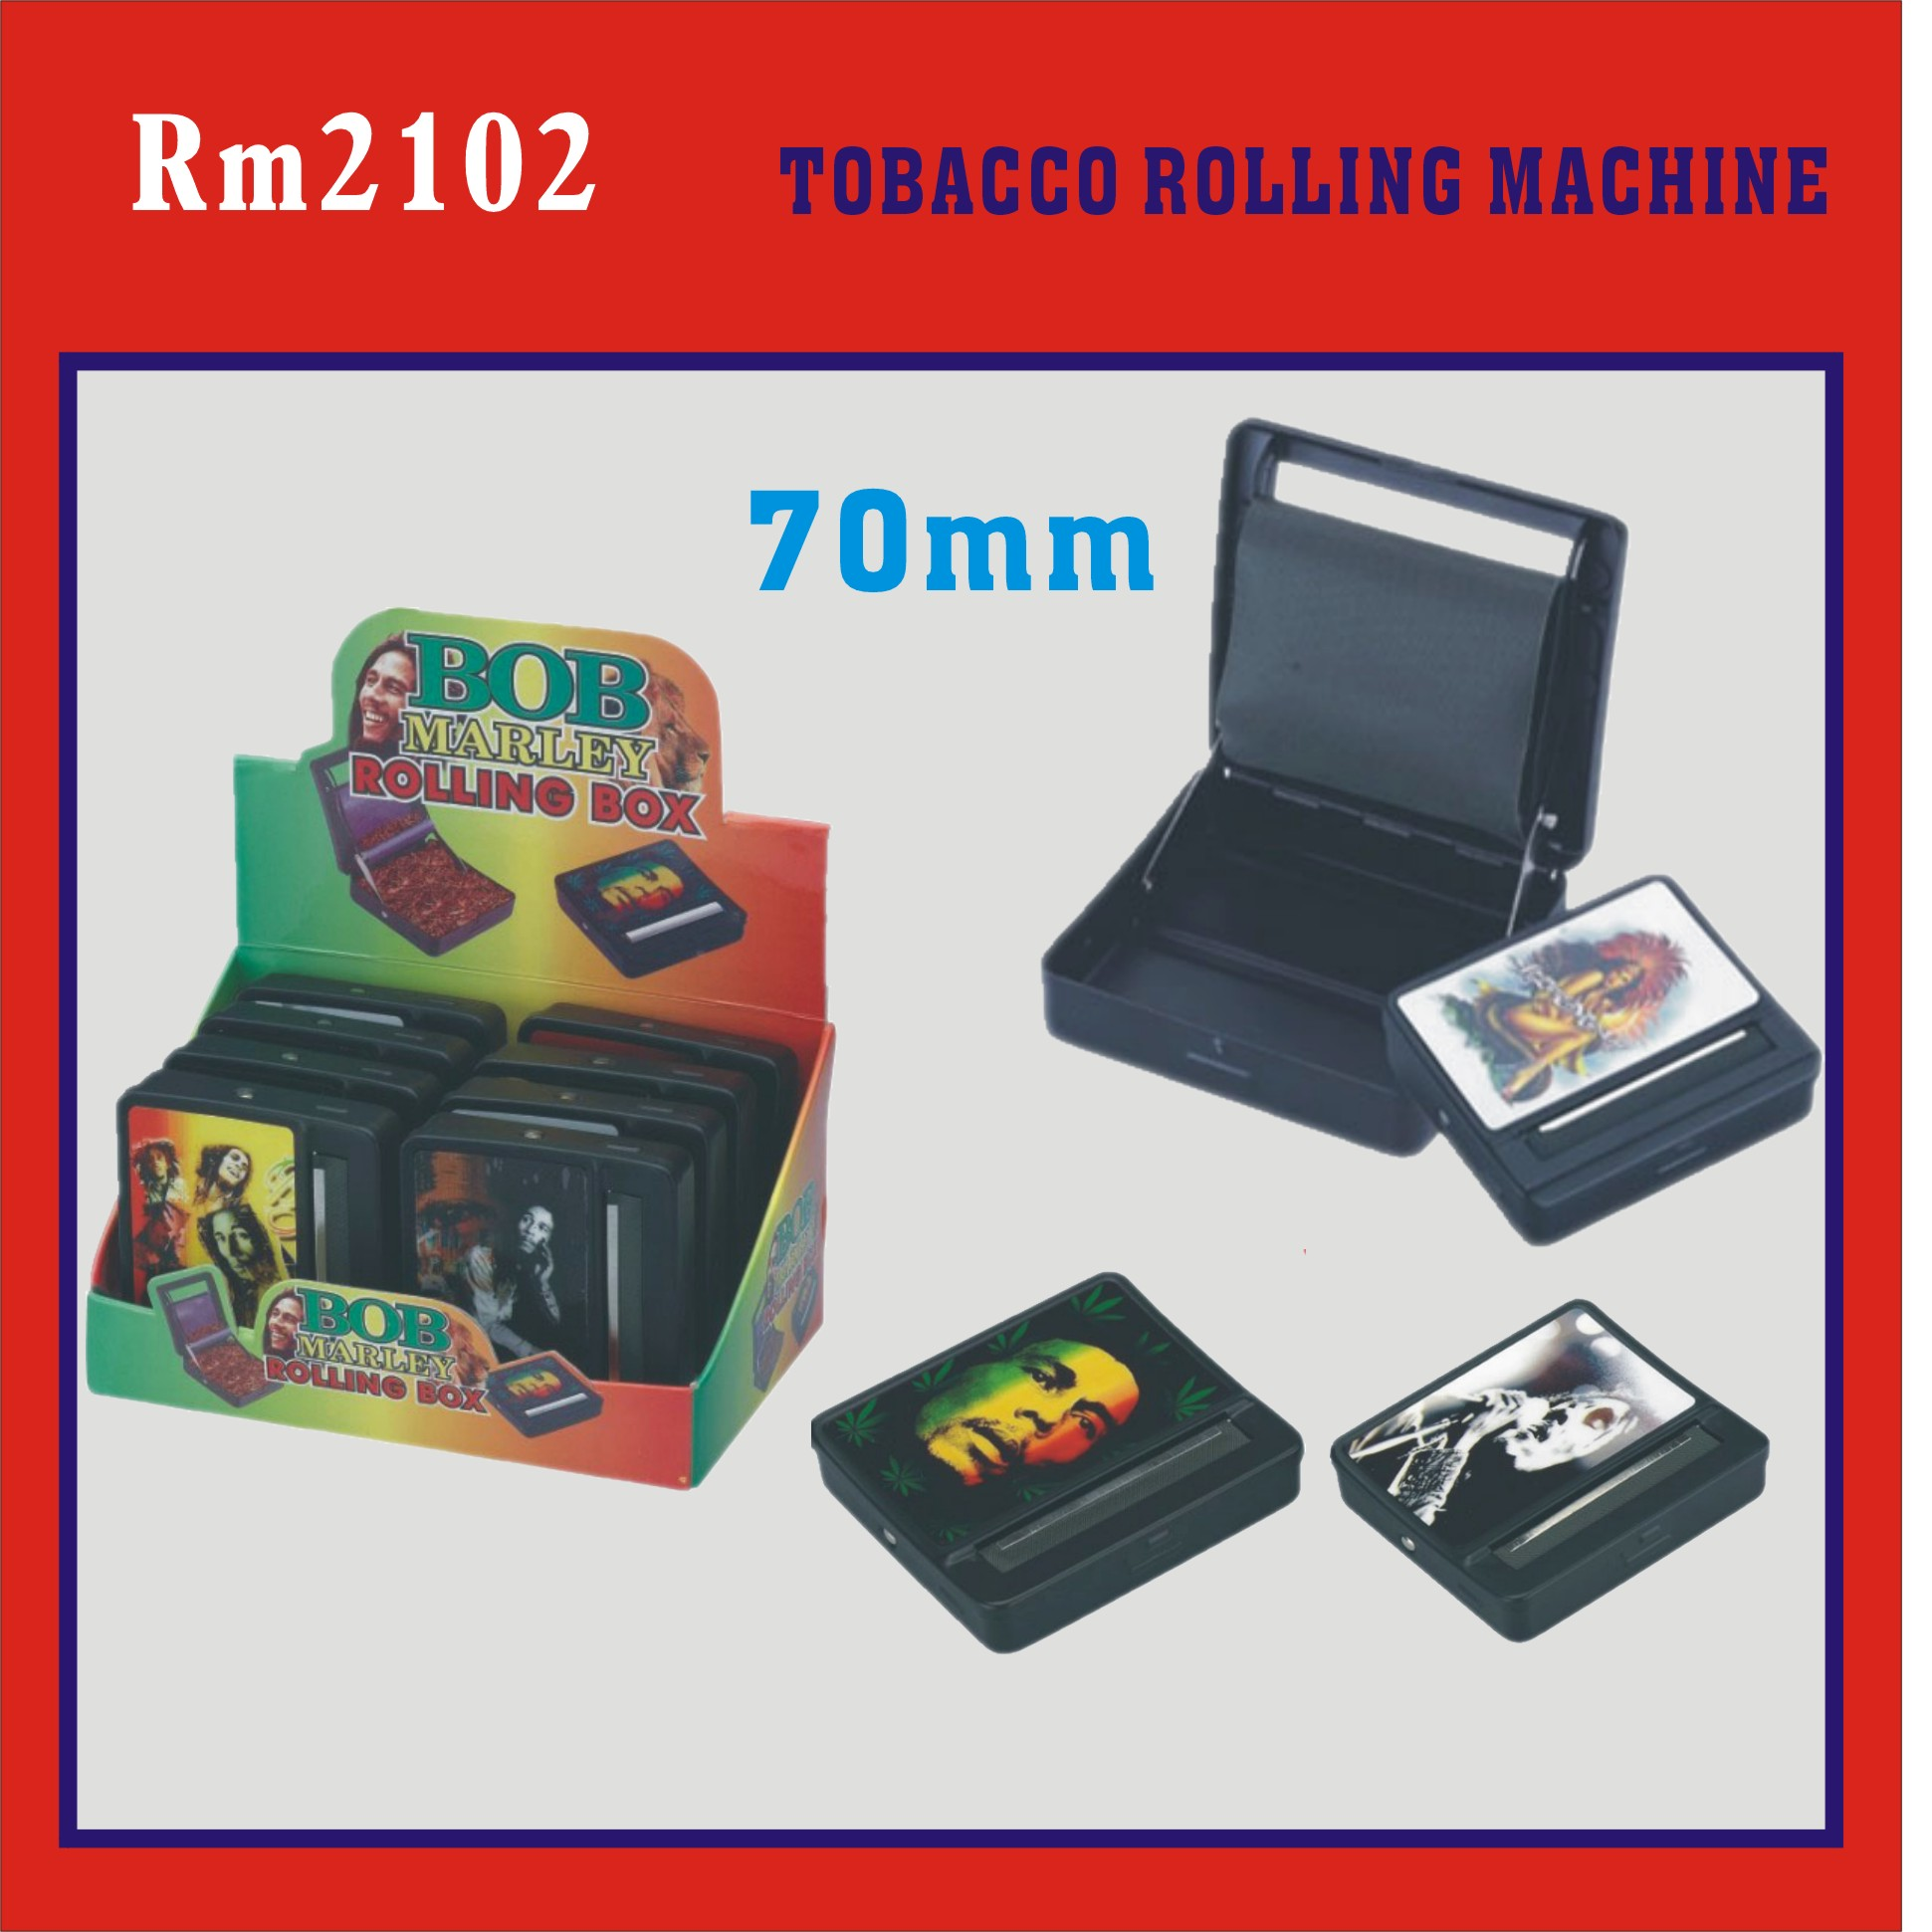 case style tobacco rolling machine (Rolling machine with box,tobacco rolling machine)